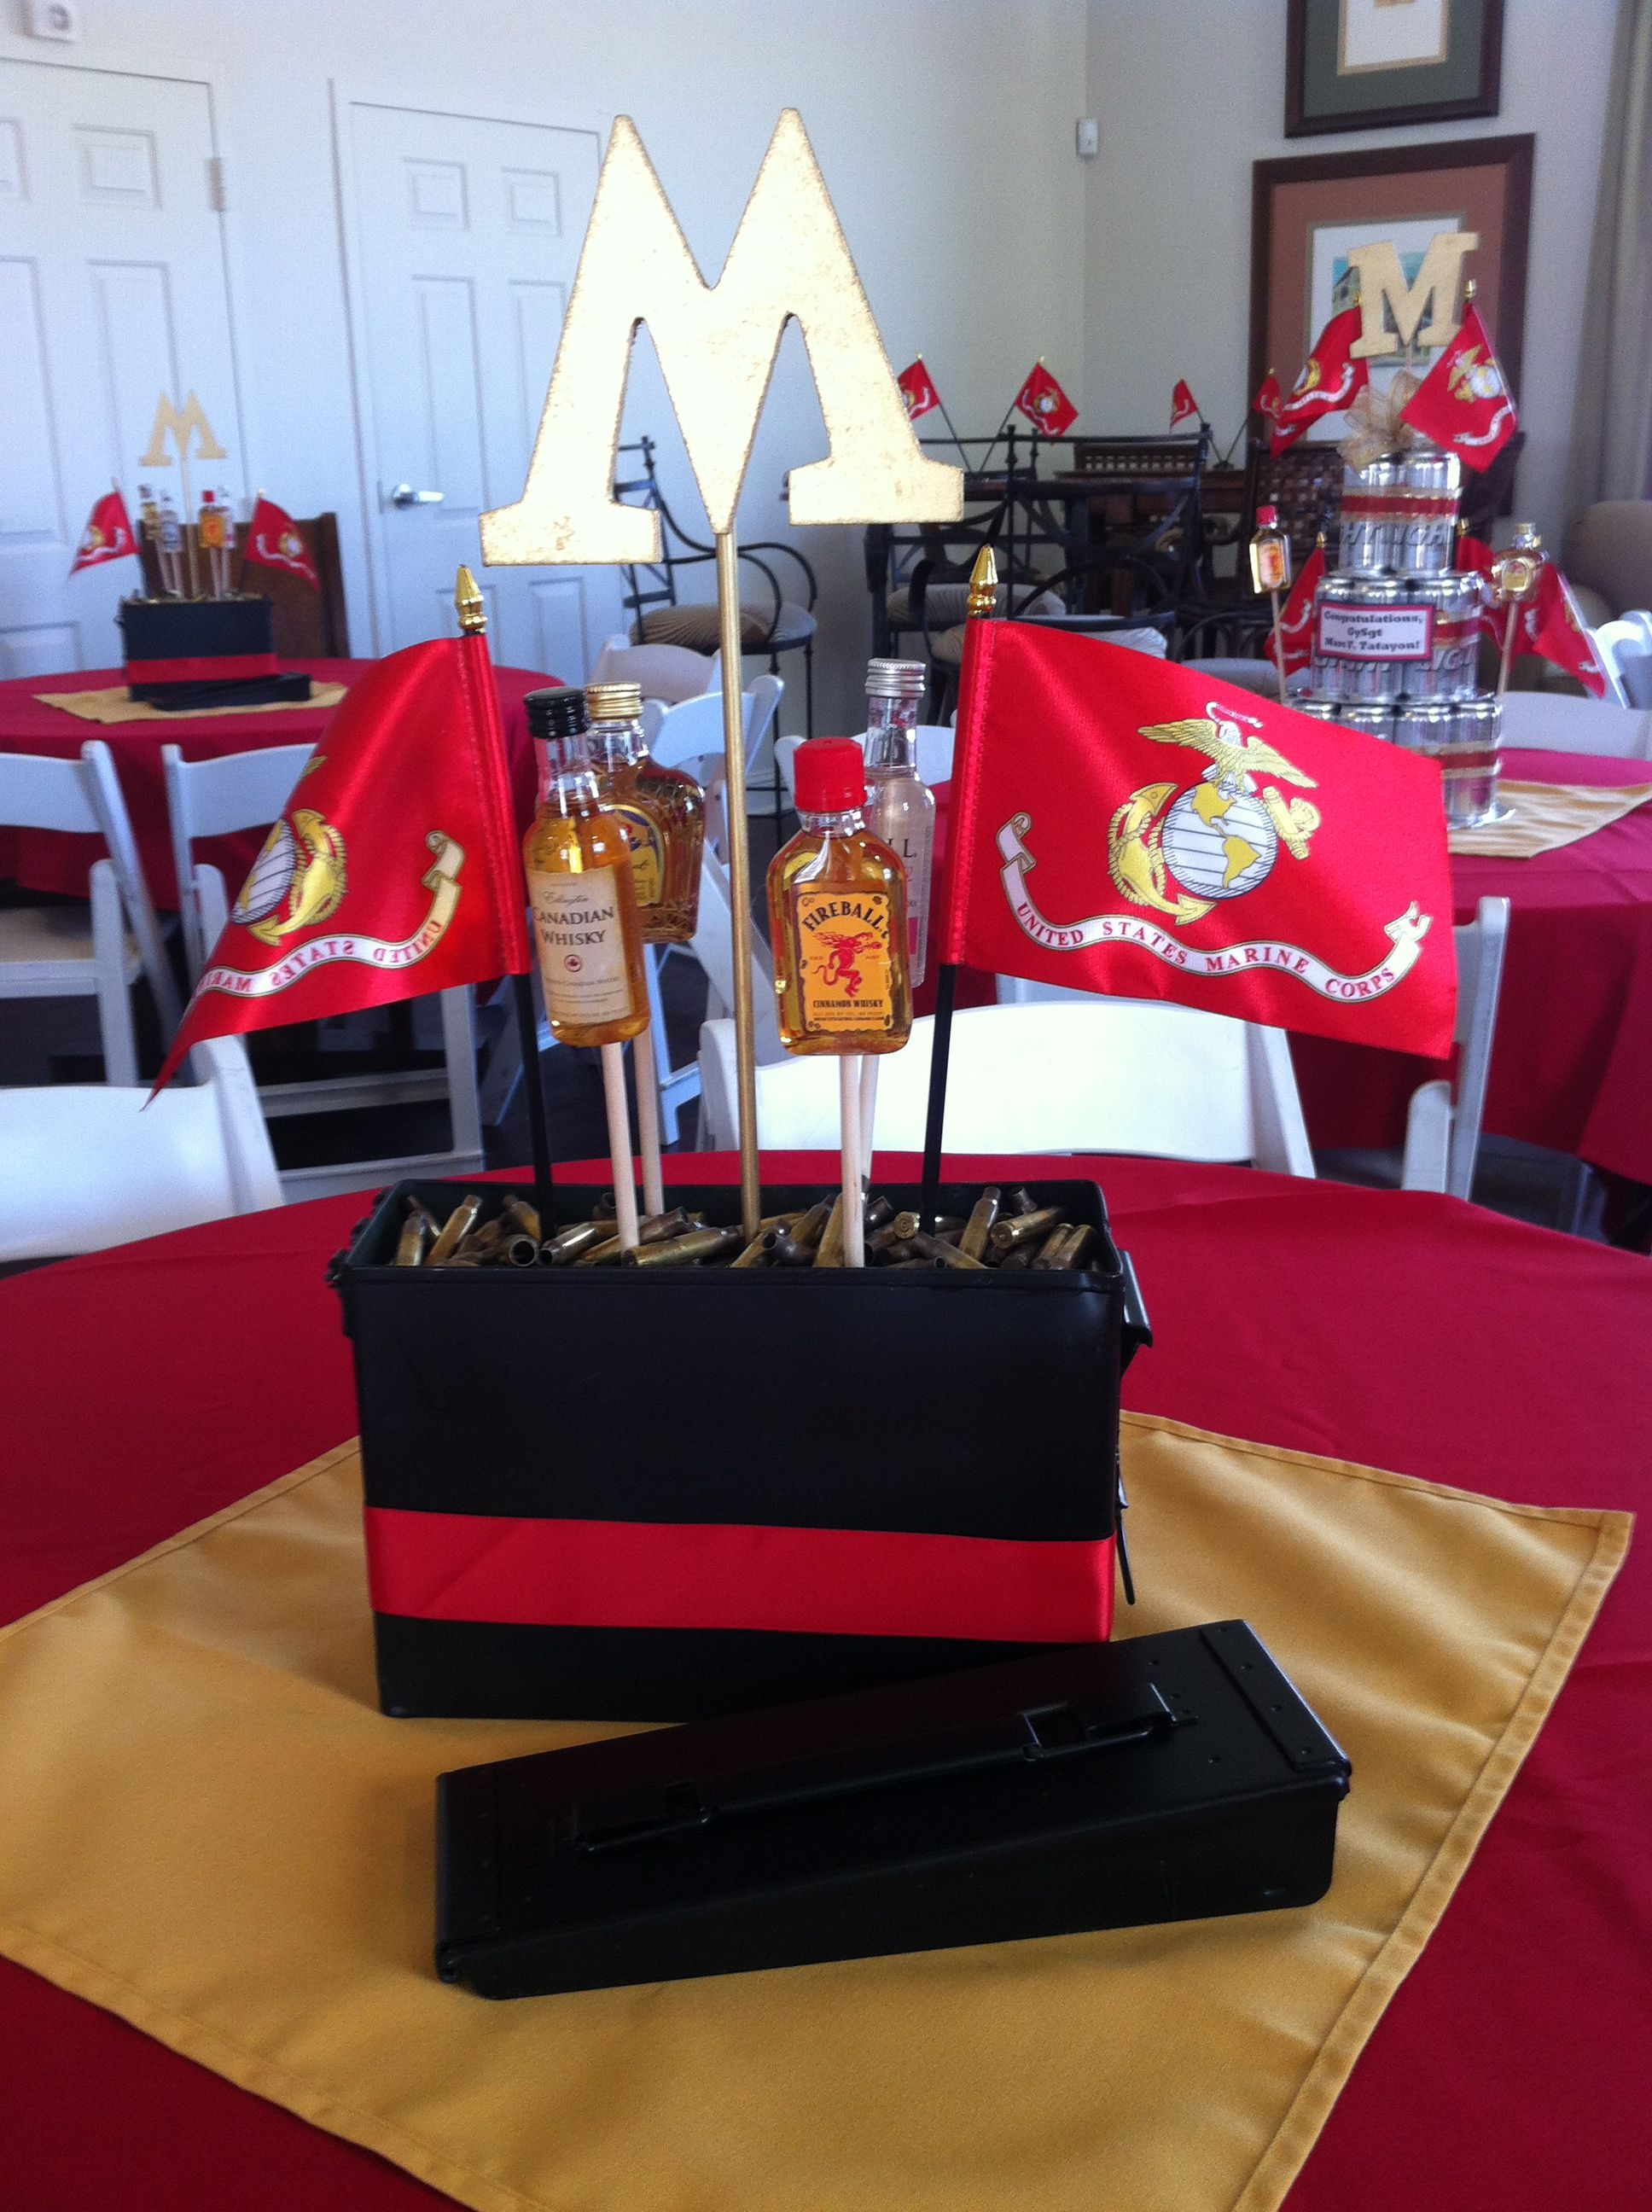 USMC Retirement party but change to air force